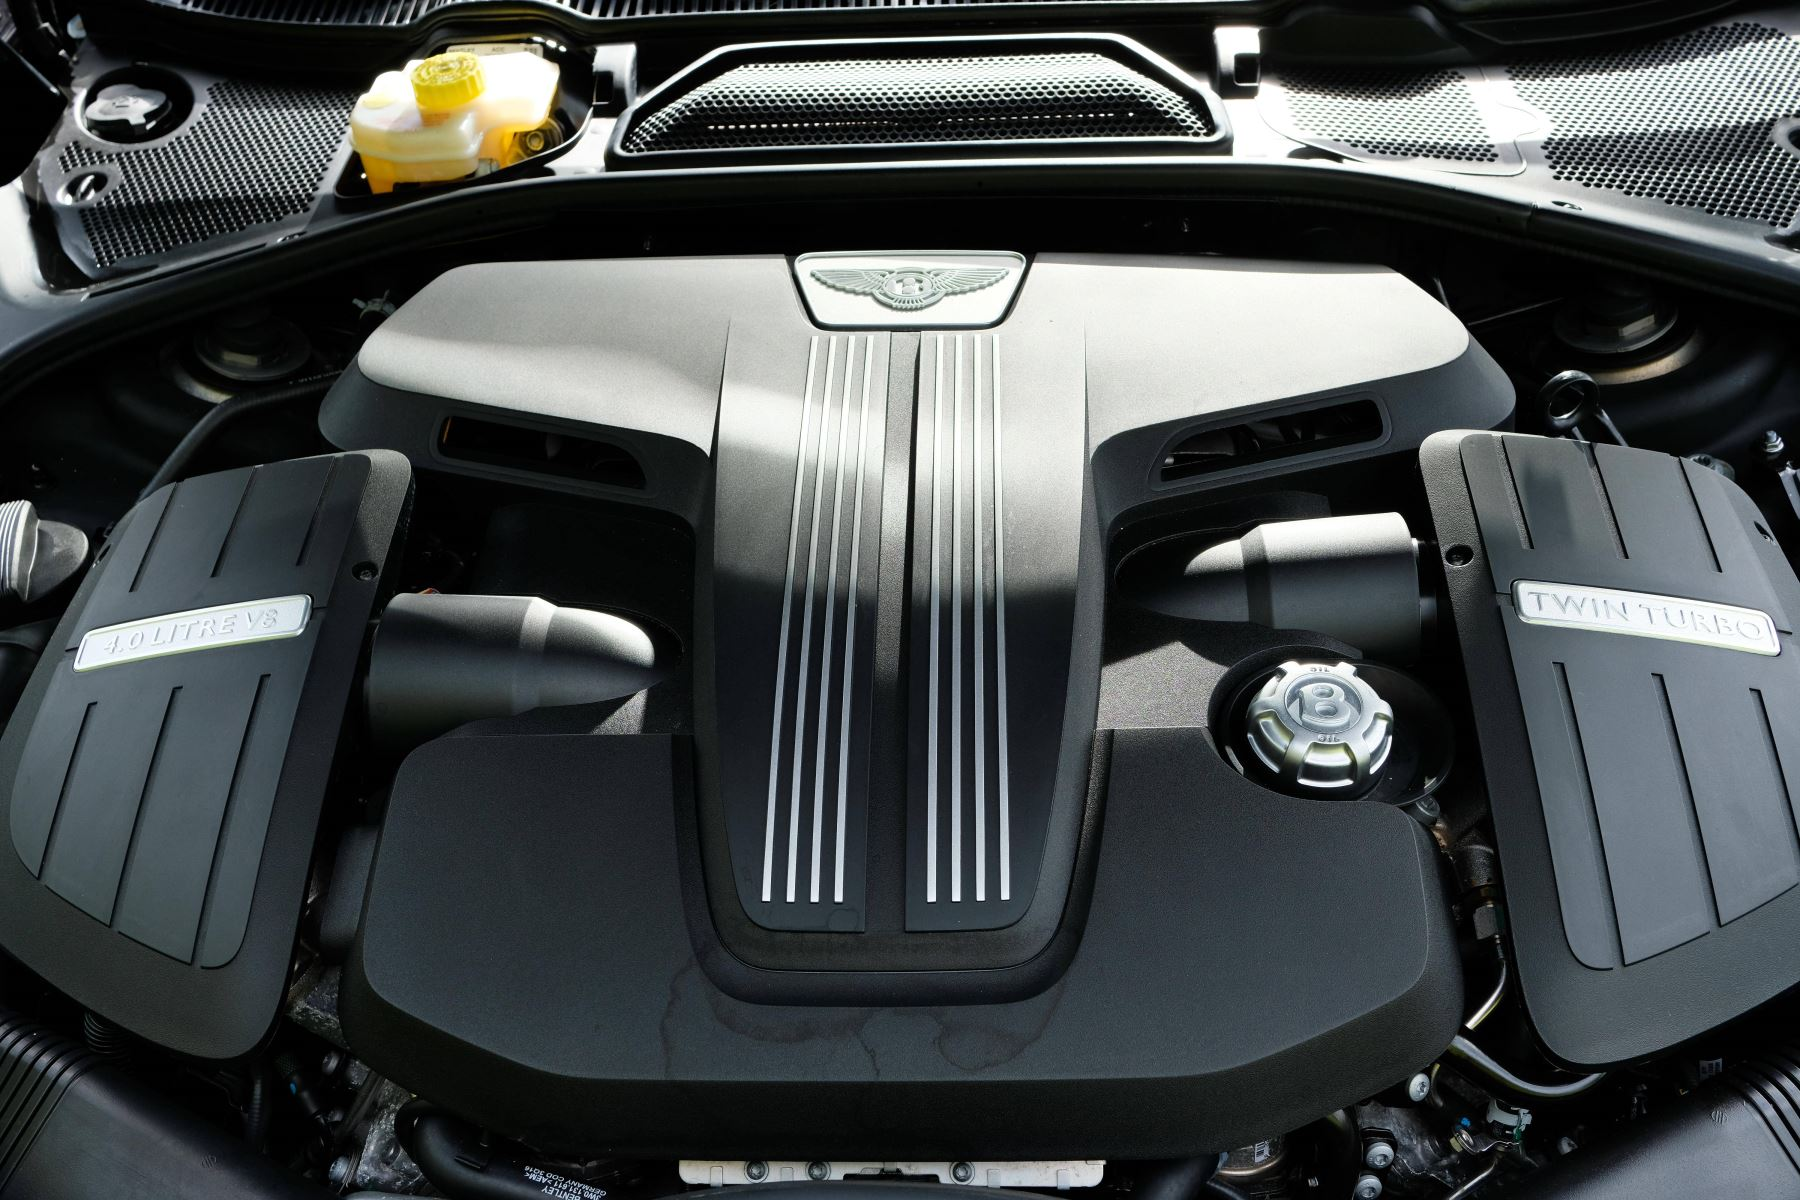 Bentley Continental GTC 4.0 V8 S Mulliner Driving Spec - Premier and All Seasons Specification image 18